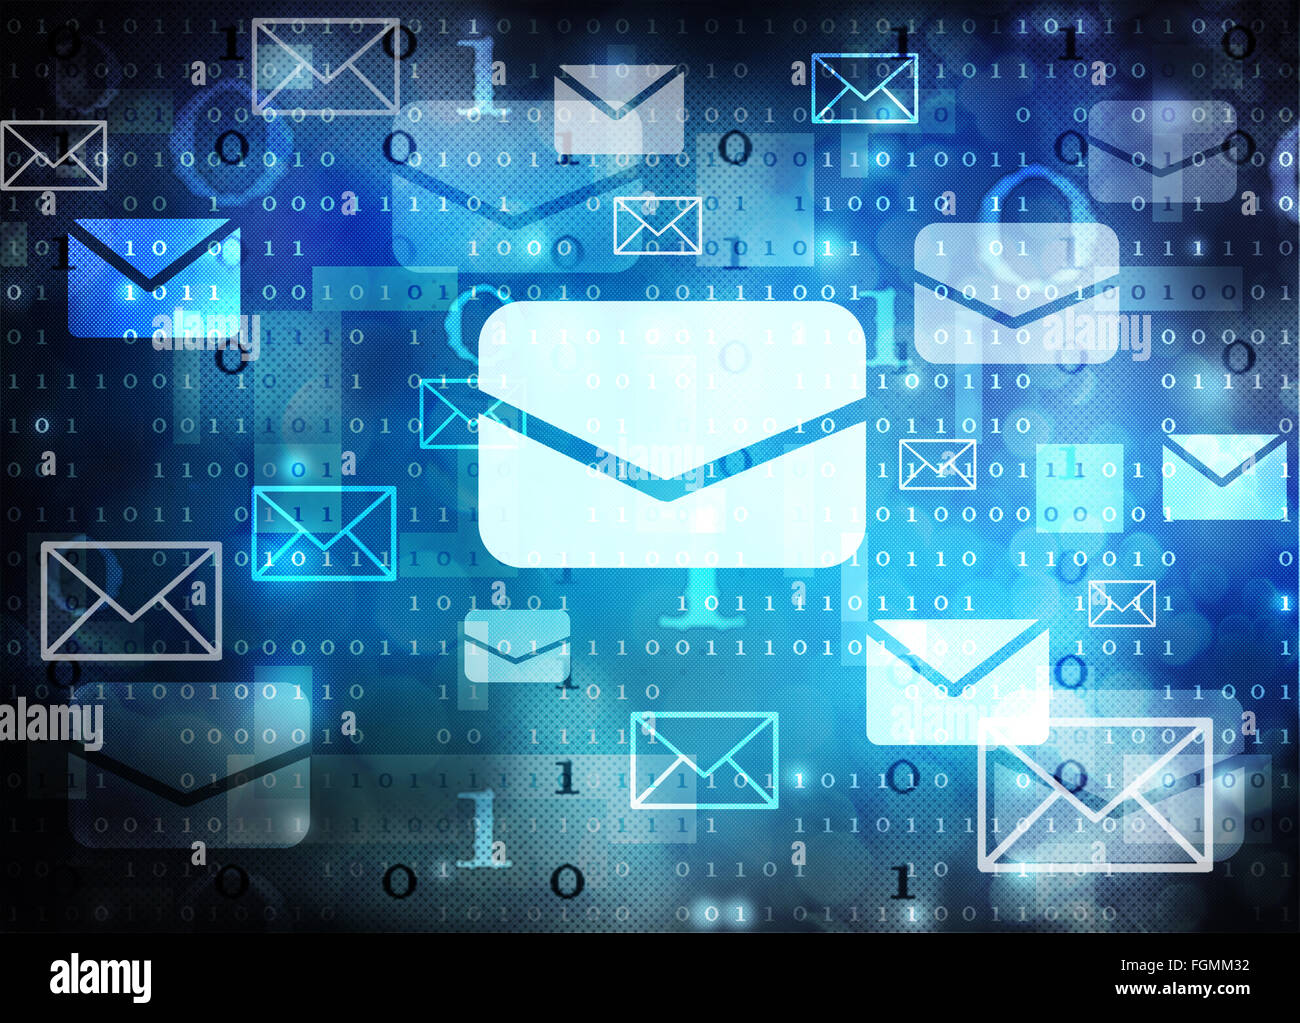 email abstract background - Stock Image